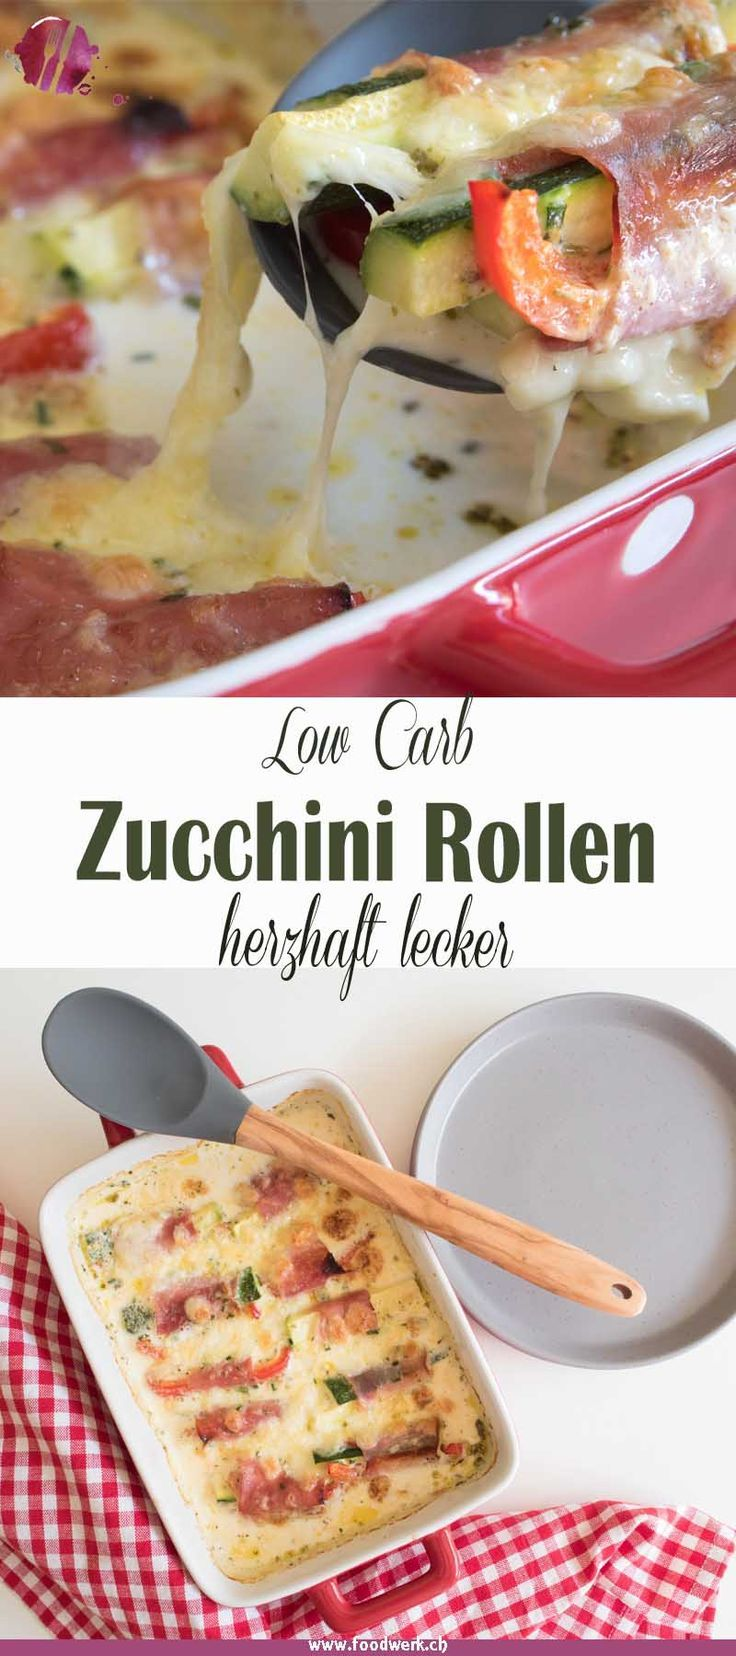 Photo of Baked zucchini rolls low carb | Food Blog Switzerland | foodwerk.ch